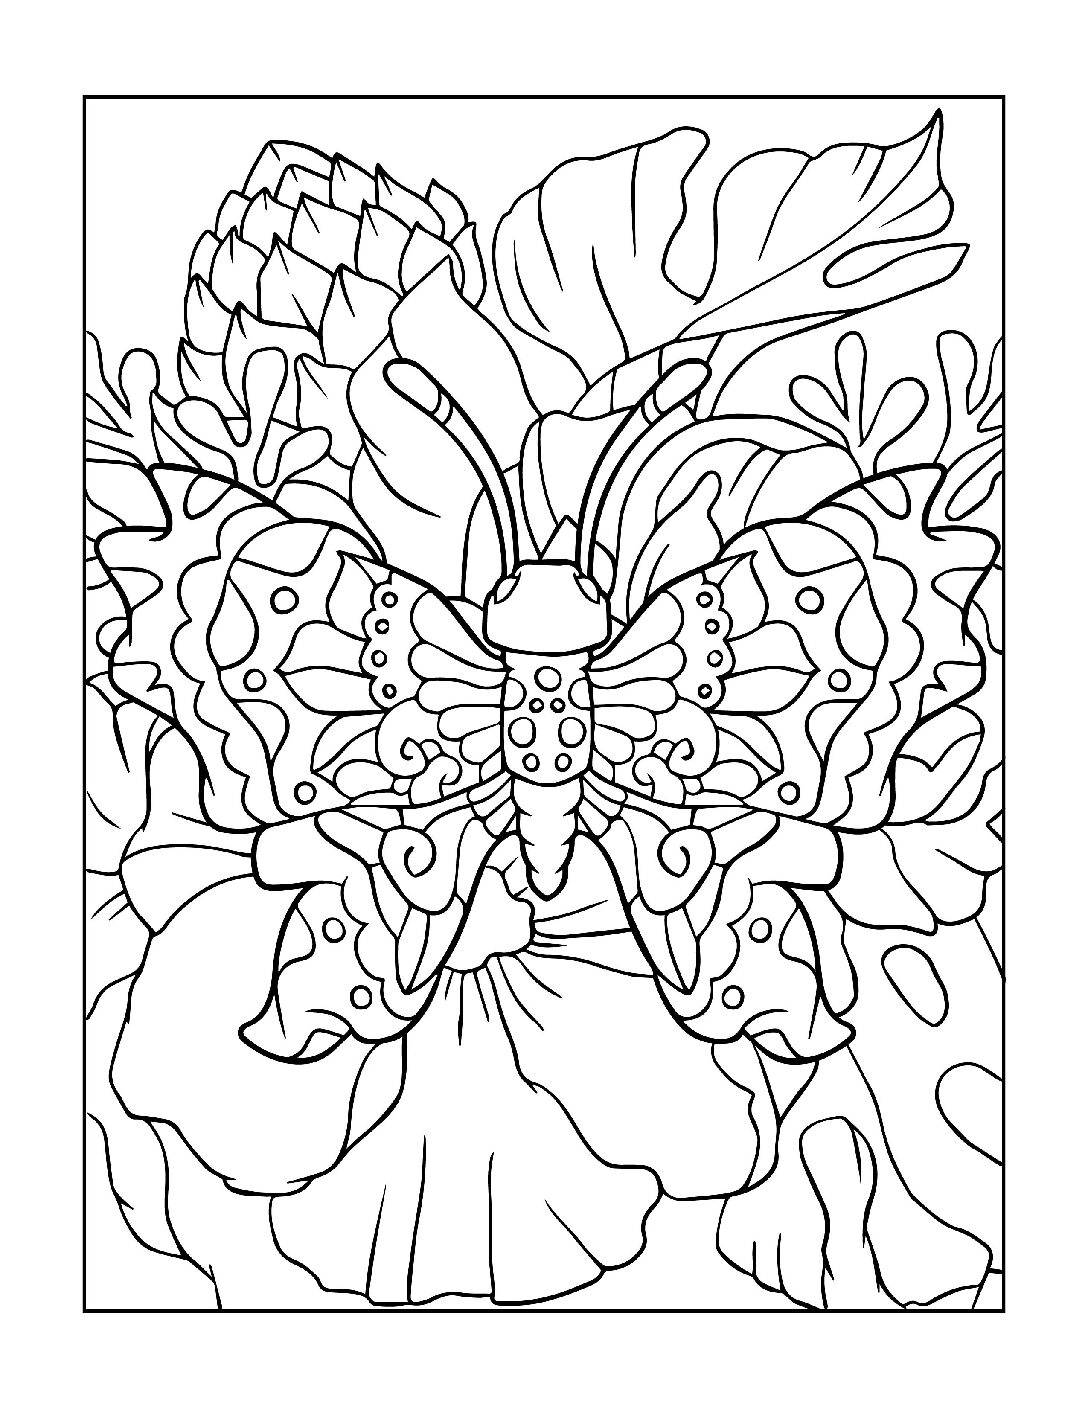 Coloring-Pages_Butterflies-14-01-pdf Free Printable Butterfly Colouring Pages